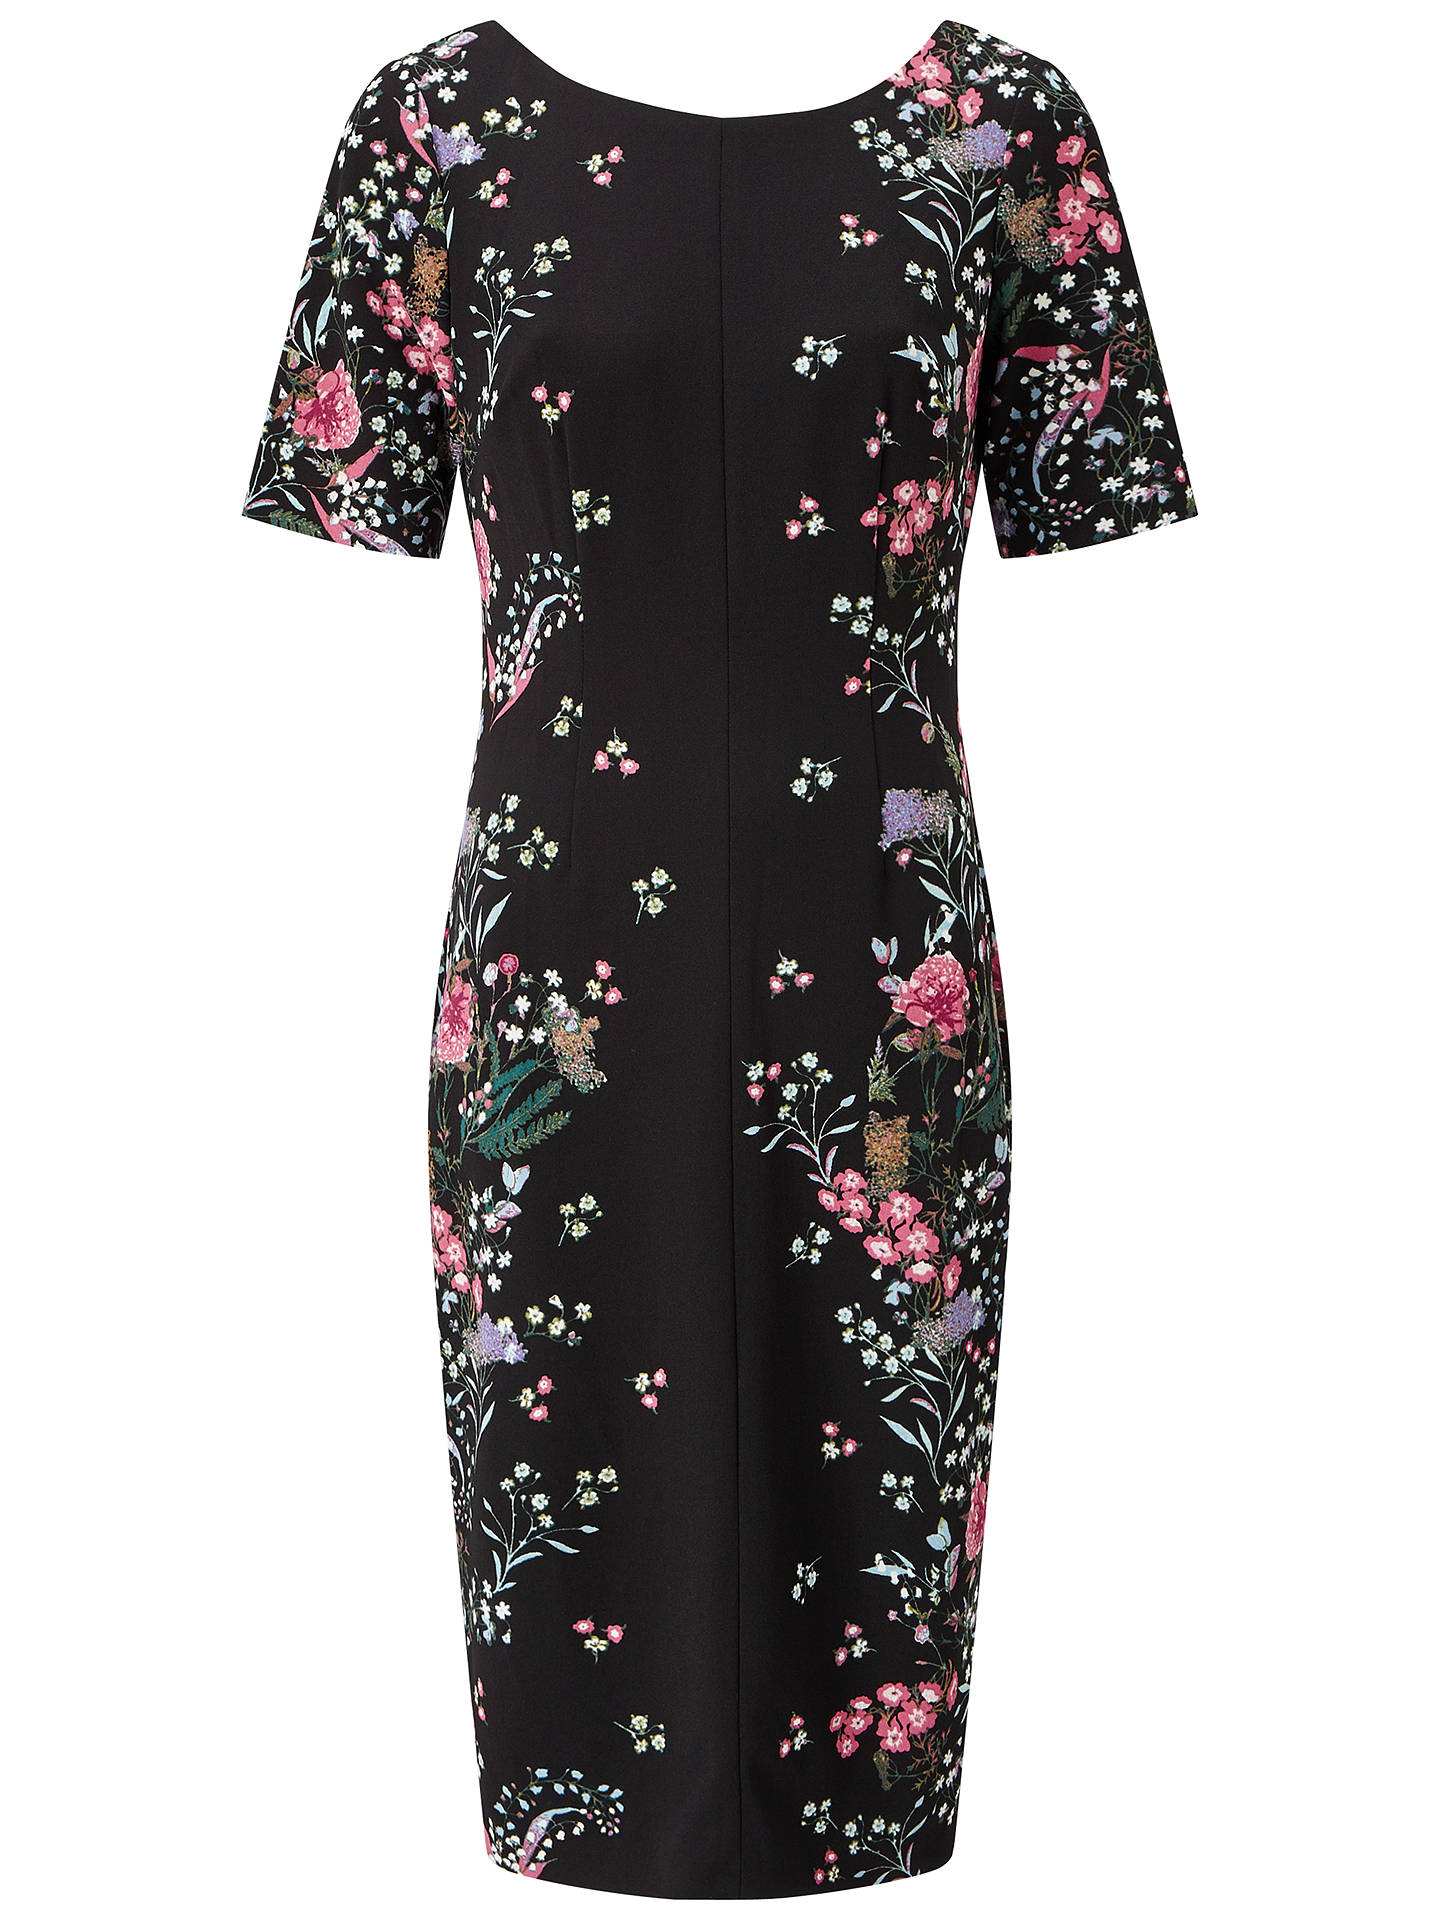 BuyAdrianna Papell Floral Printed Sheath Dress, Black, 8 Online at johnlewis.com